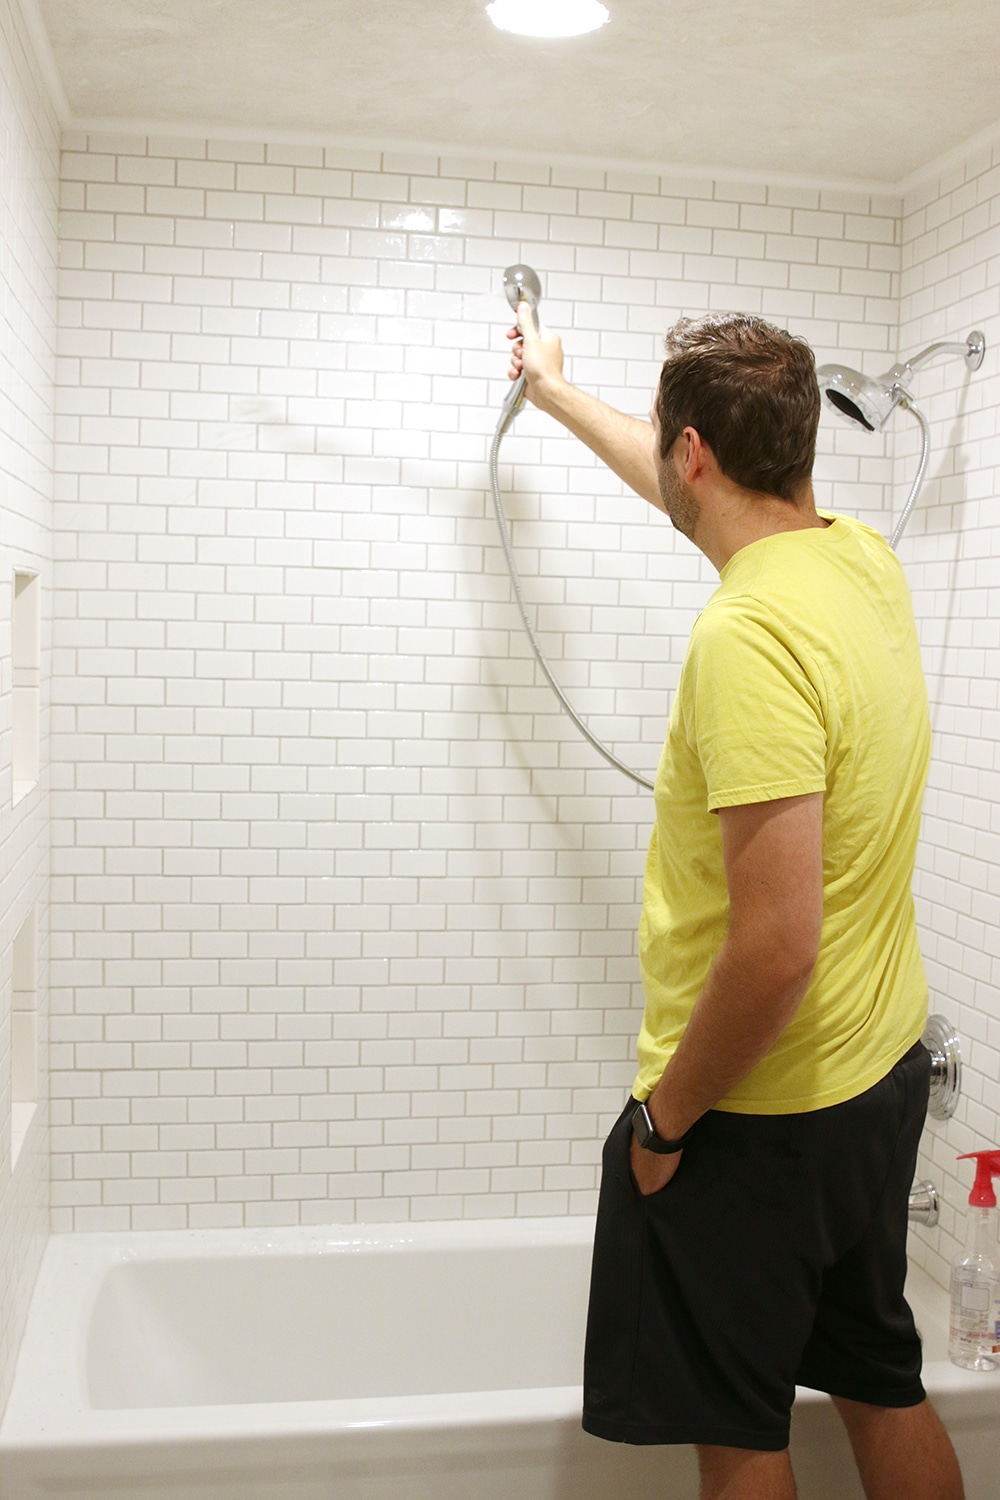 The Quickest Way to Remove Grout Haze From Tile